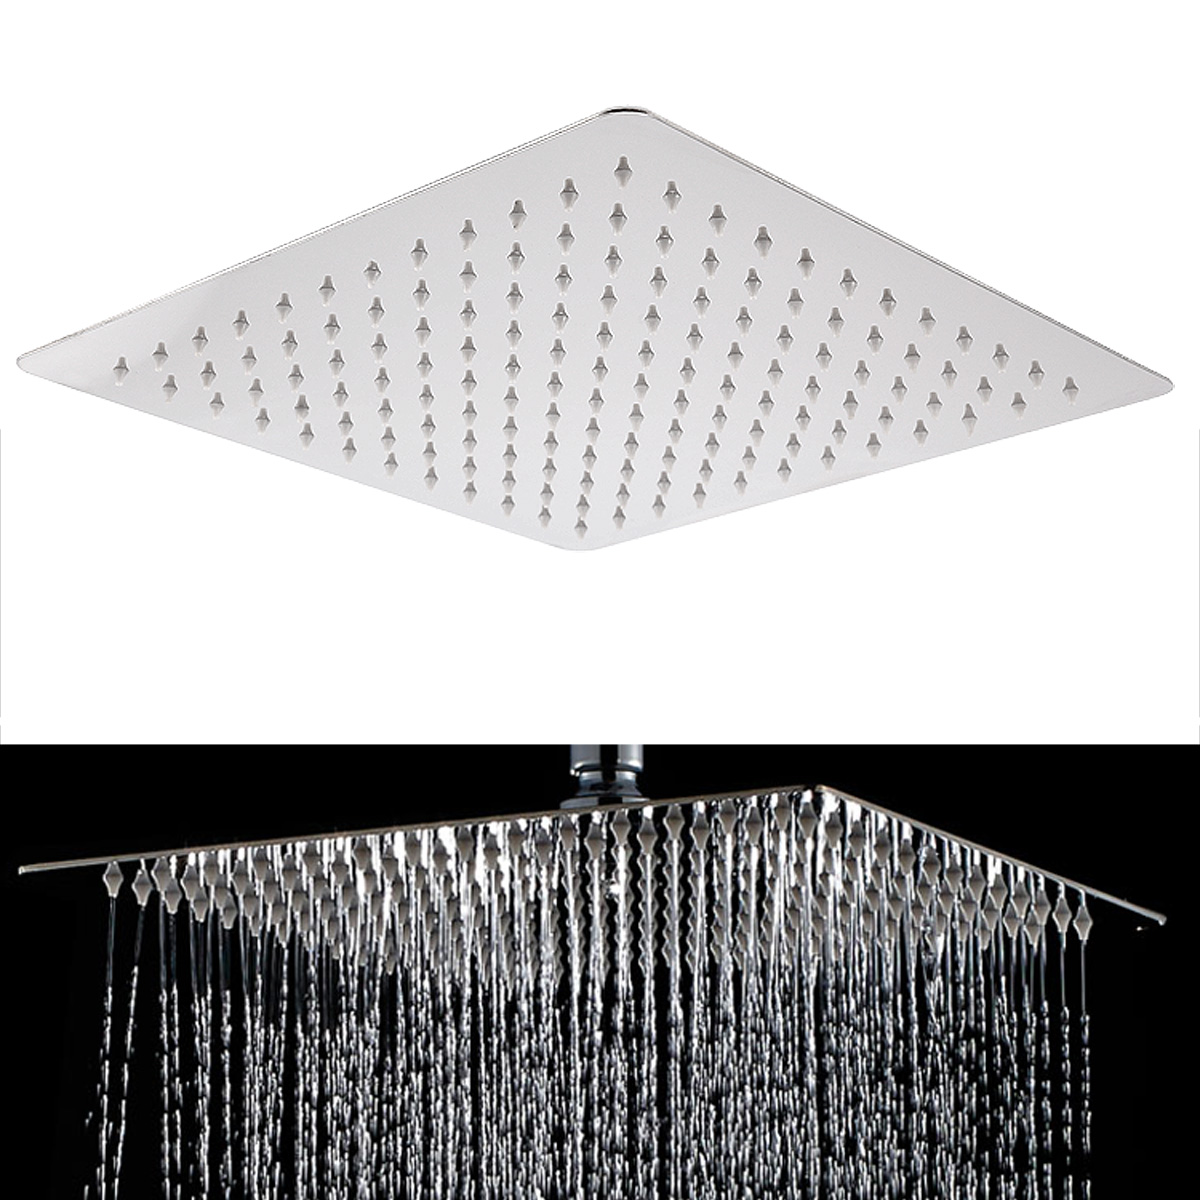 Details About 12inch Silver 201 Stainless Steel Square Overhead Flowing Shower Head Easy Fix